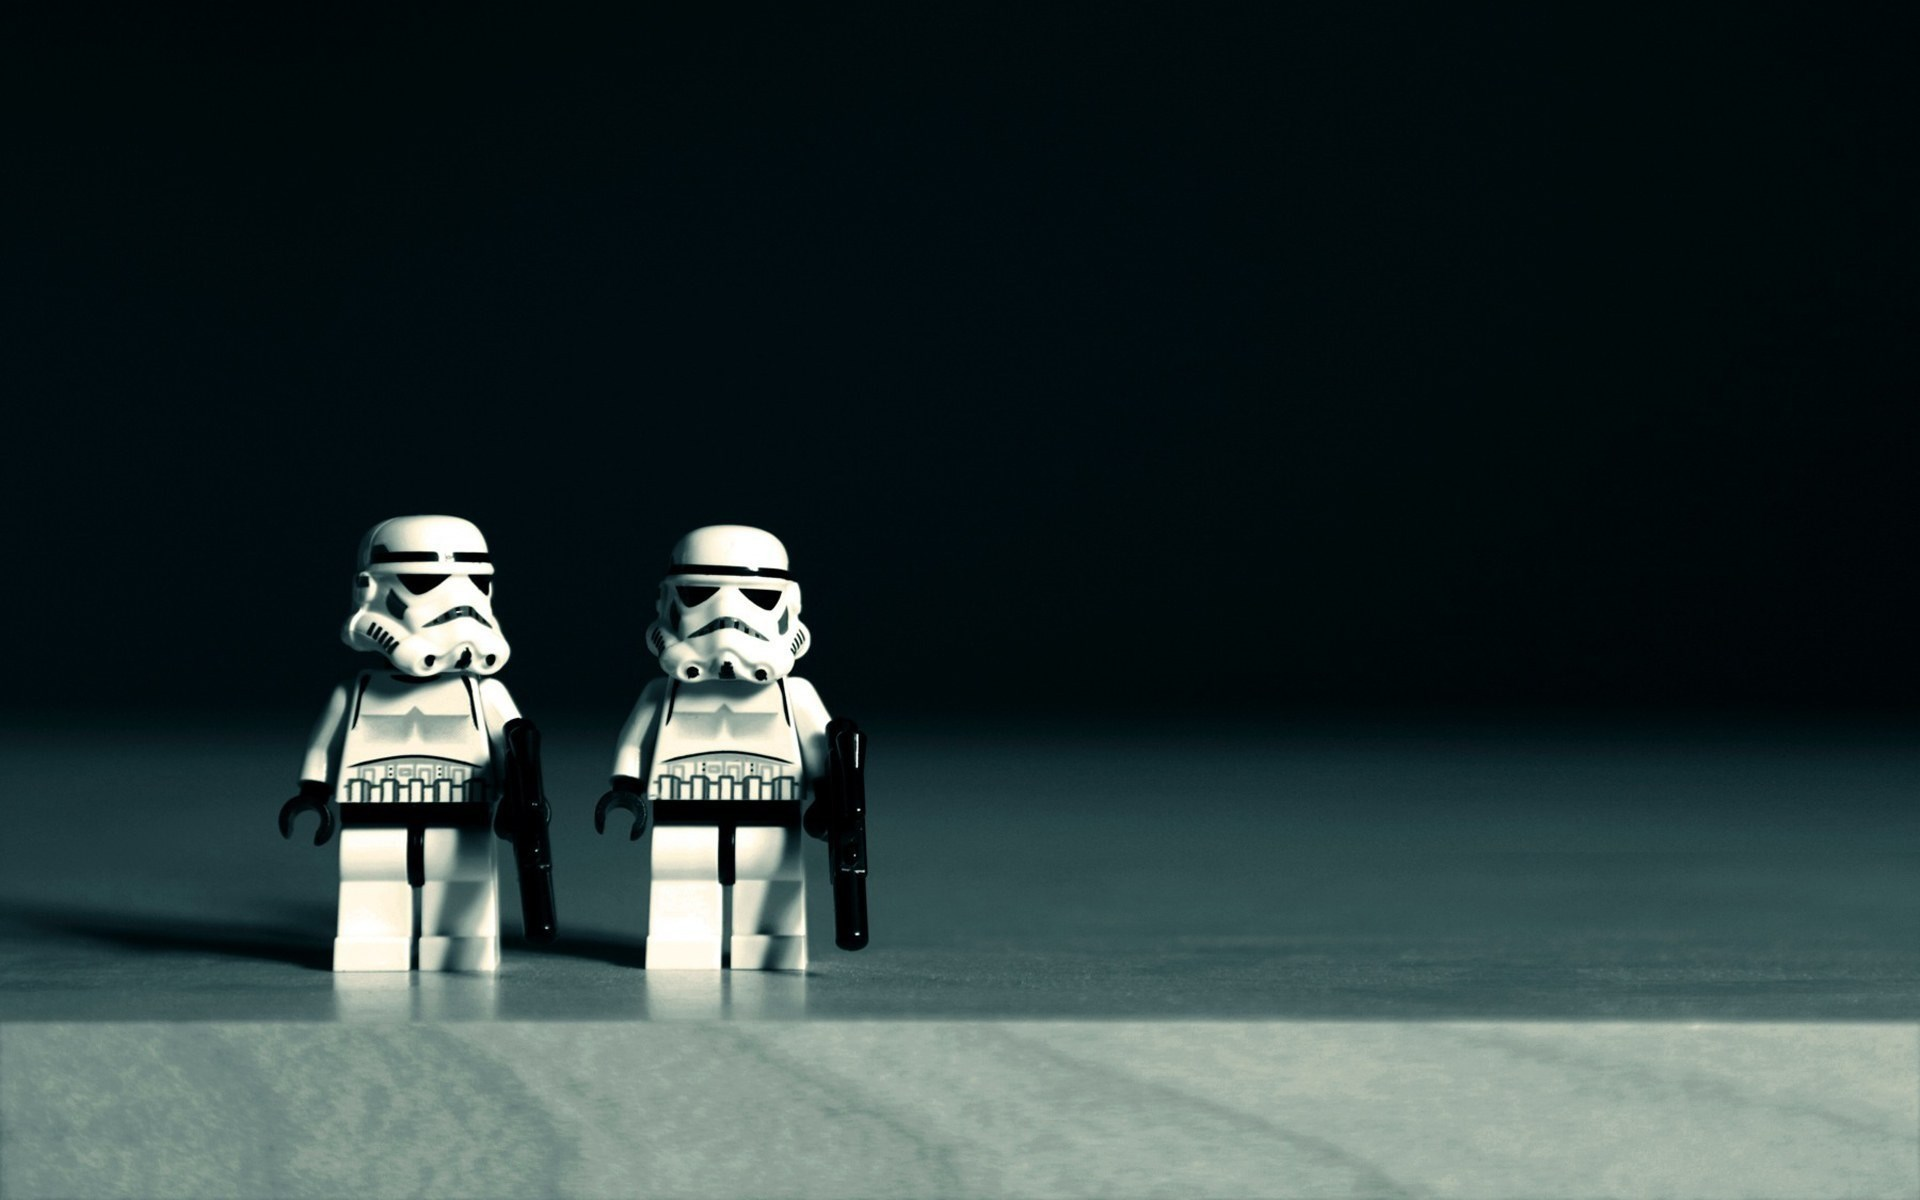 lego stormtrooper wallpaper hd